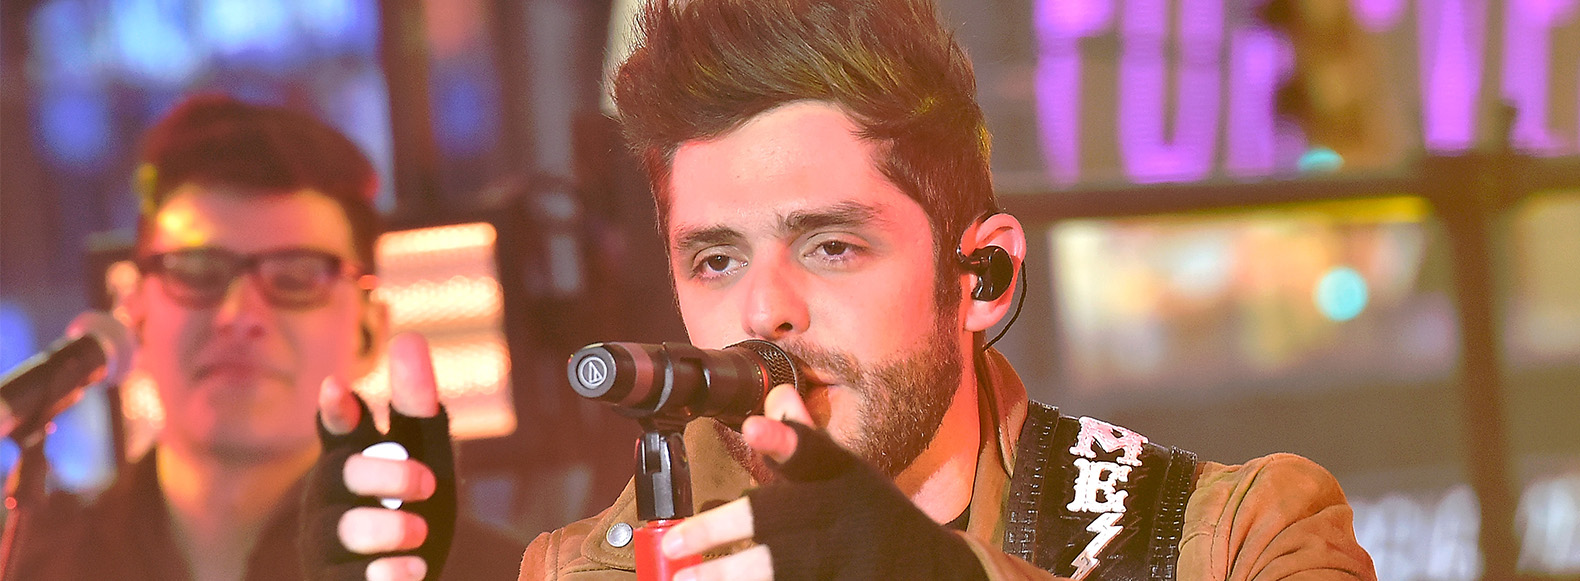 Thomas Rhett Graphic_1560162091961.jpg.jpg